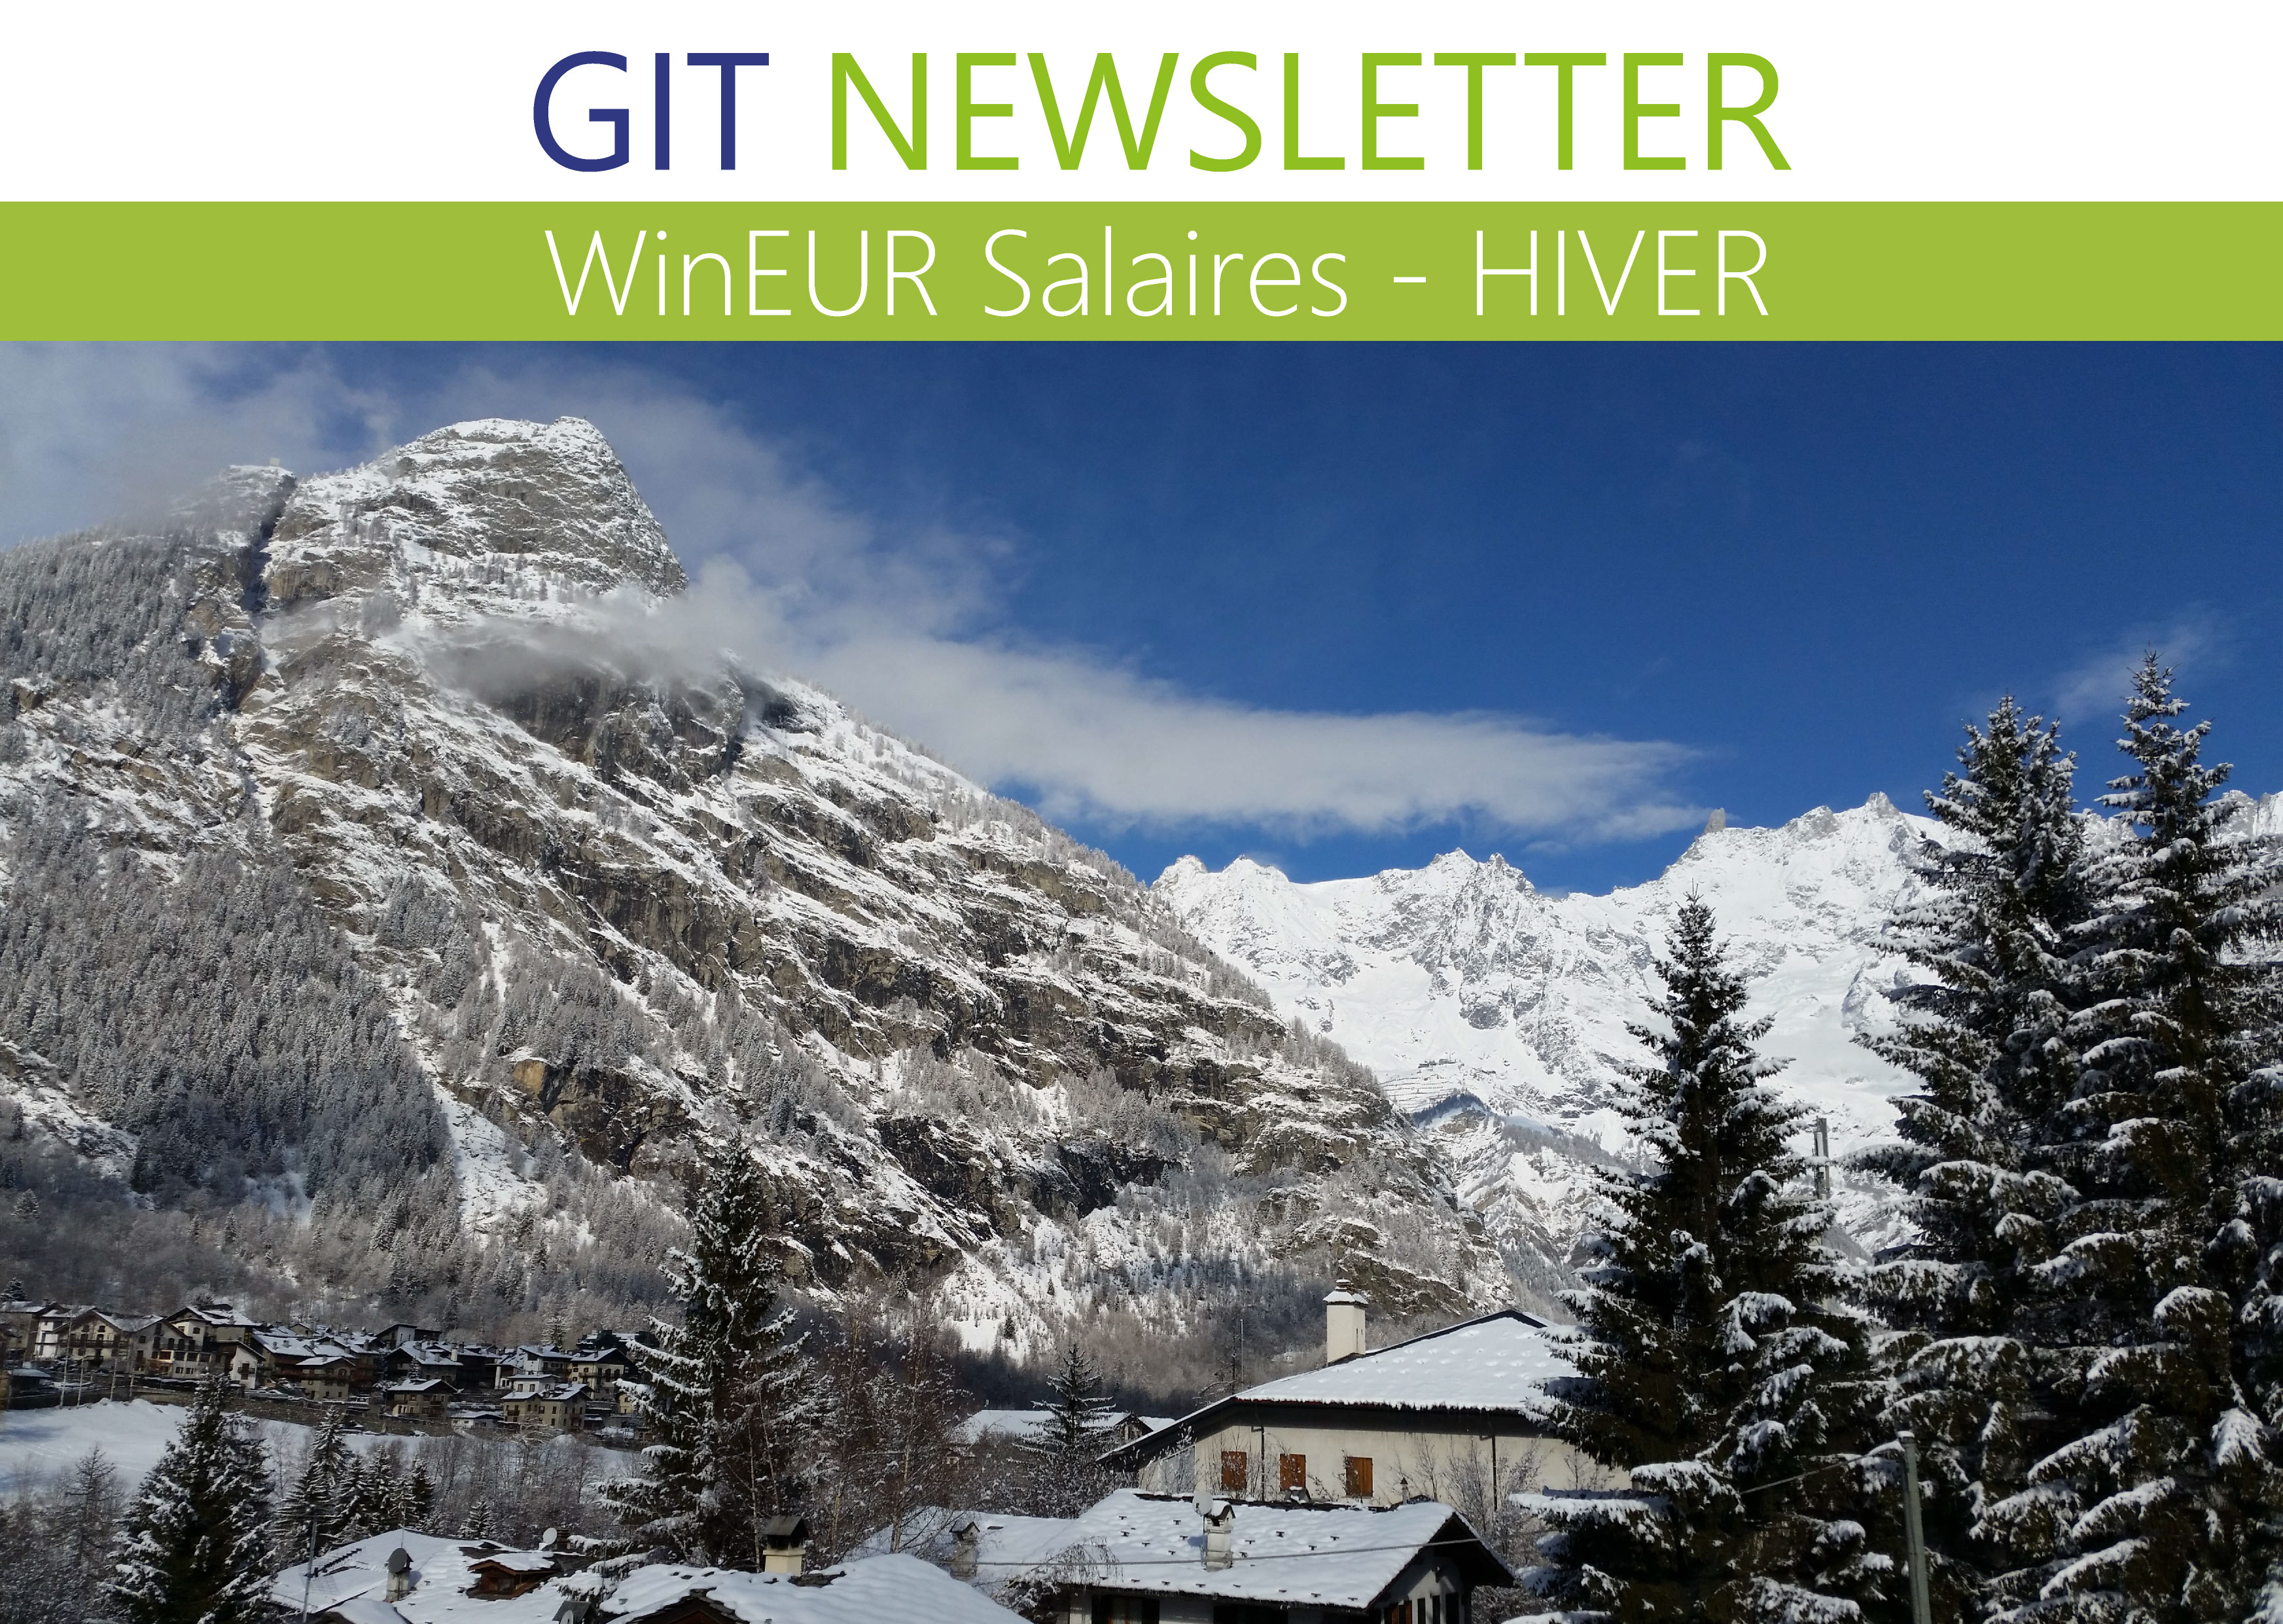 Newsletter Salaires hiver 2019